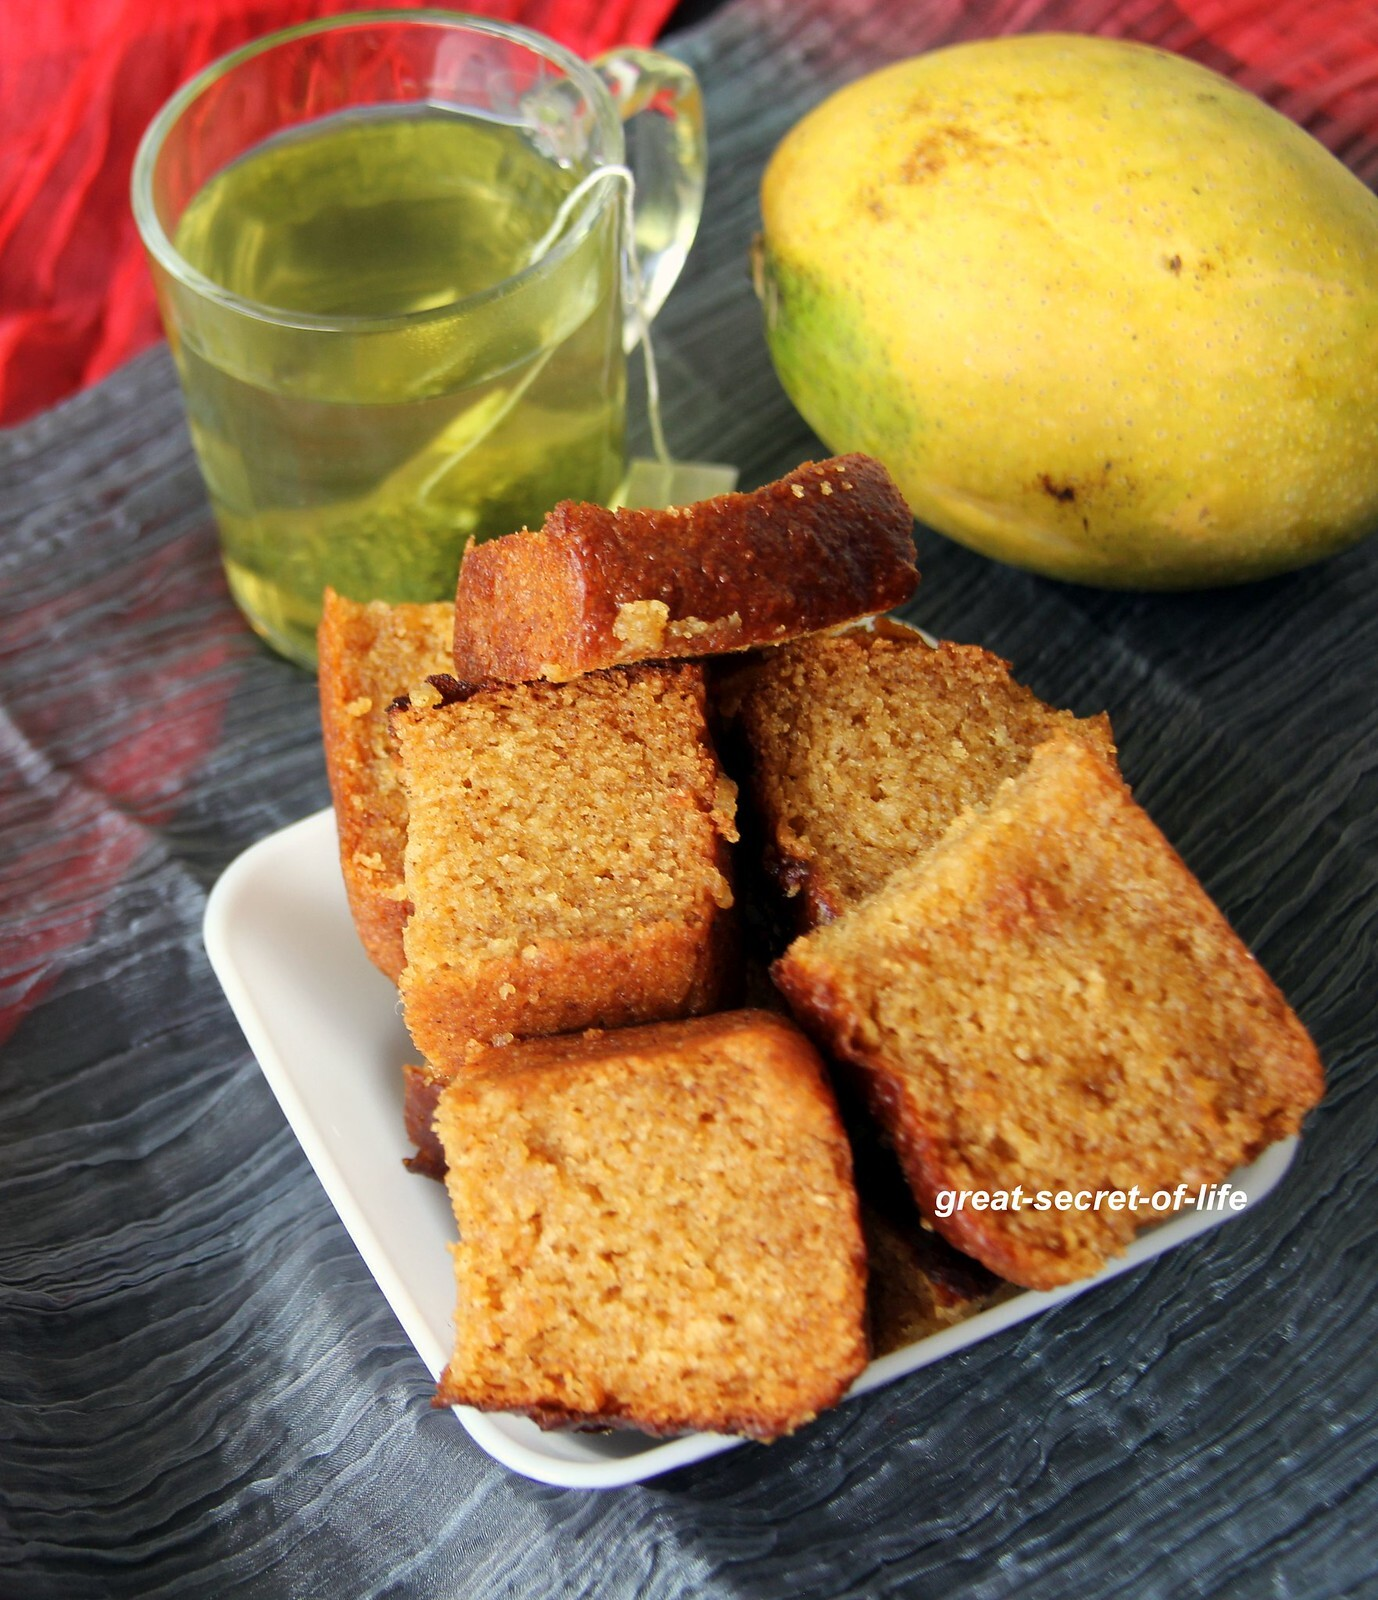 Eggless Mango Cake - Summer treat - Simple eggless baking recipe